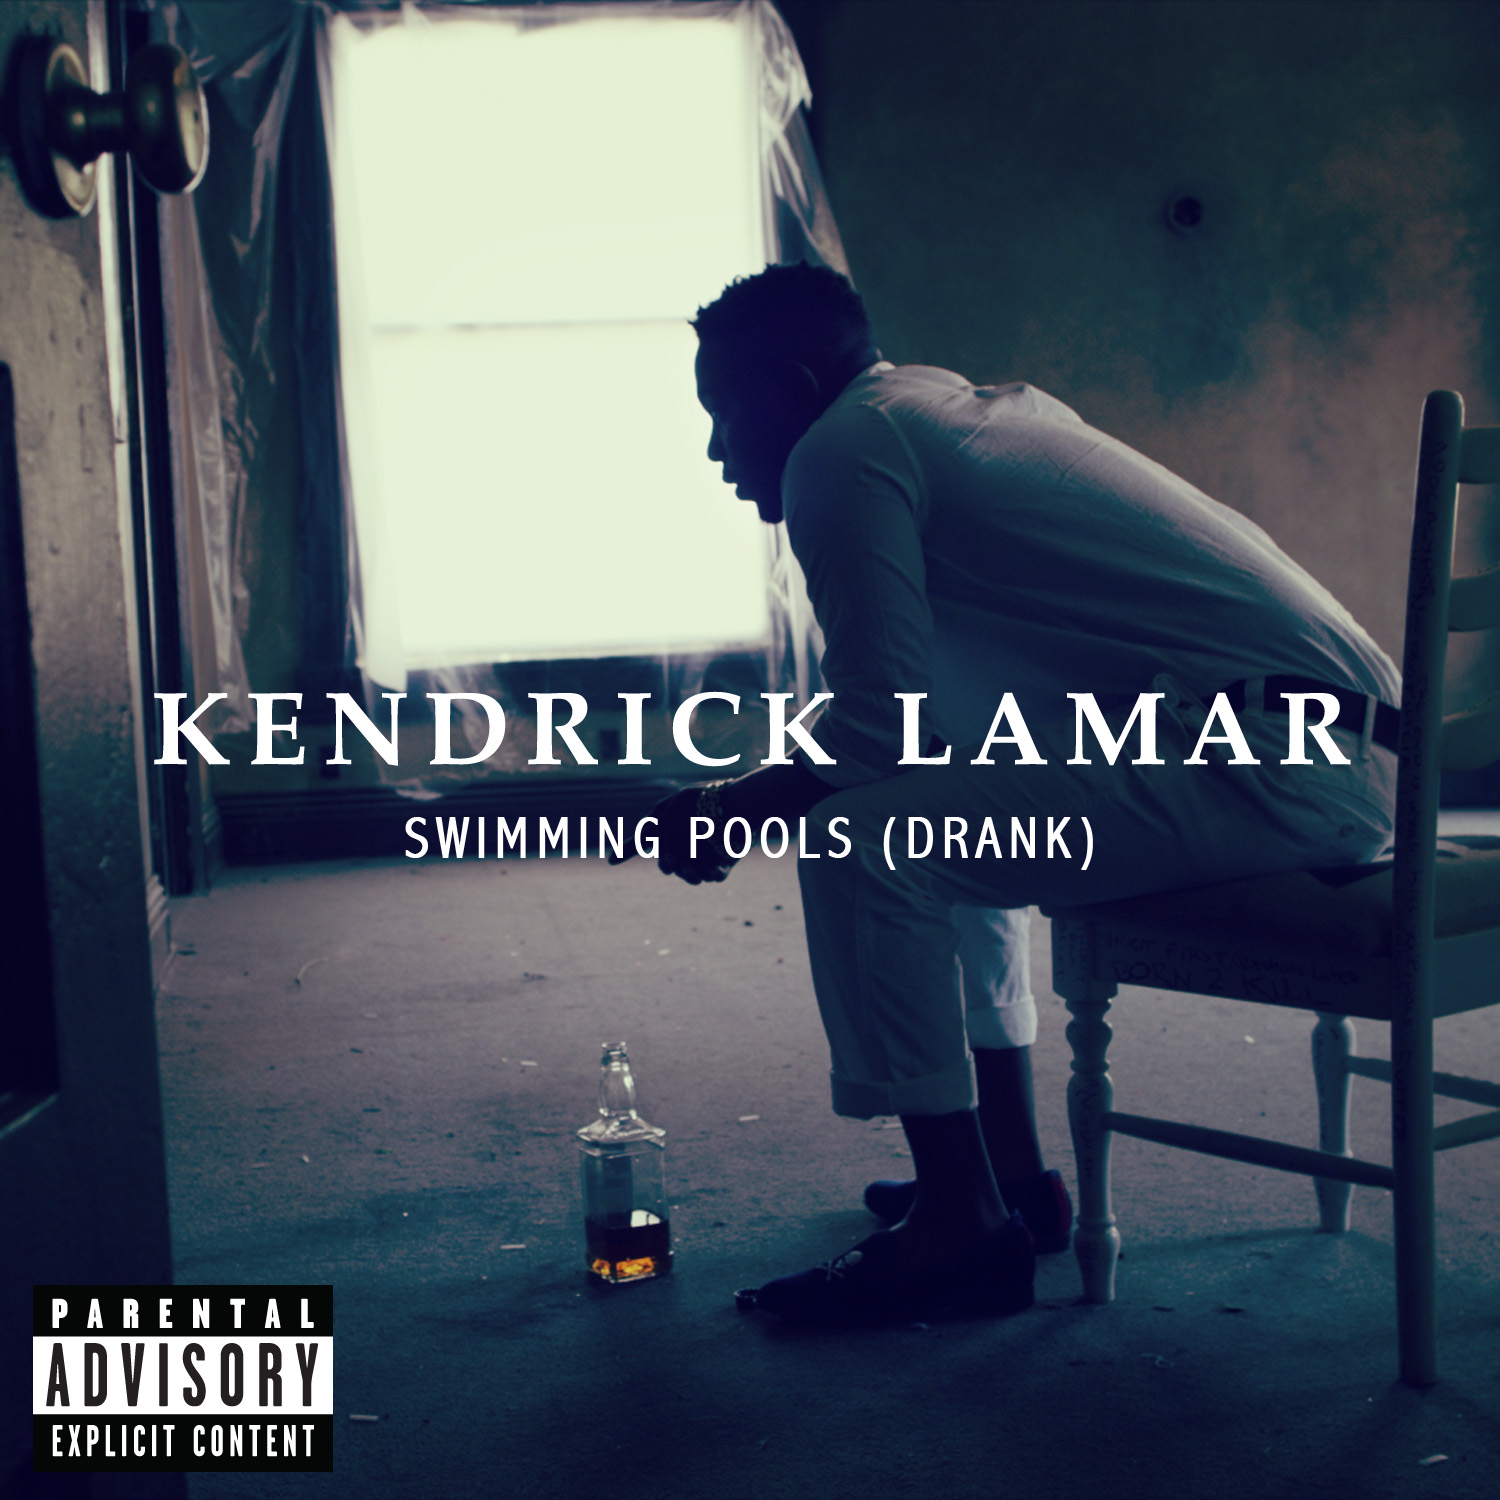 kendrick lamar swimming pools drank produced by t minus new music speak to all